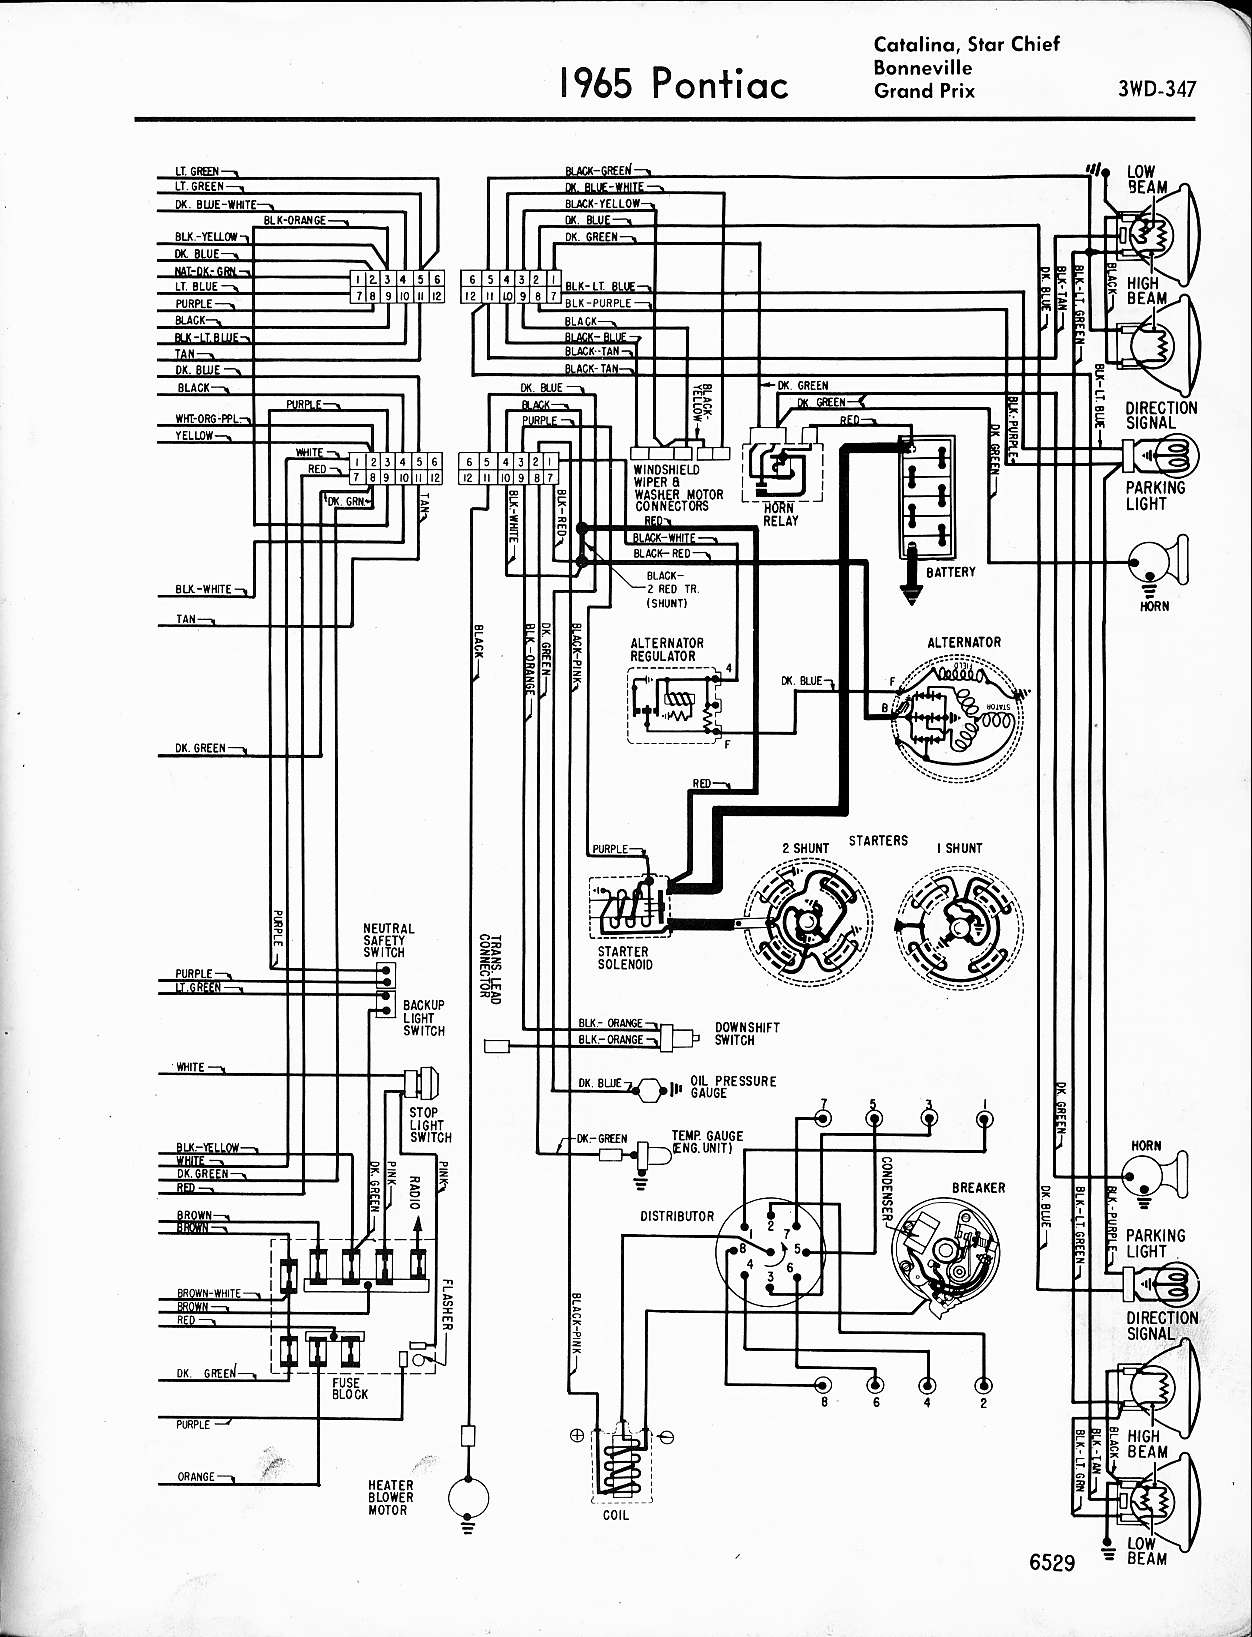 pontiac tempest wiring diagram wiring diagrams online pontiac tempest wiring diagram i have a 1966 pontiac gto it has 5 wires going to the starter